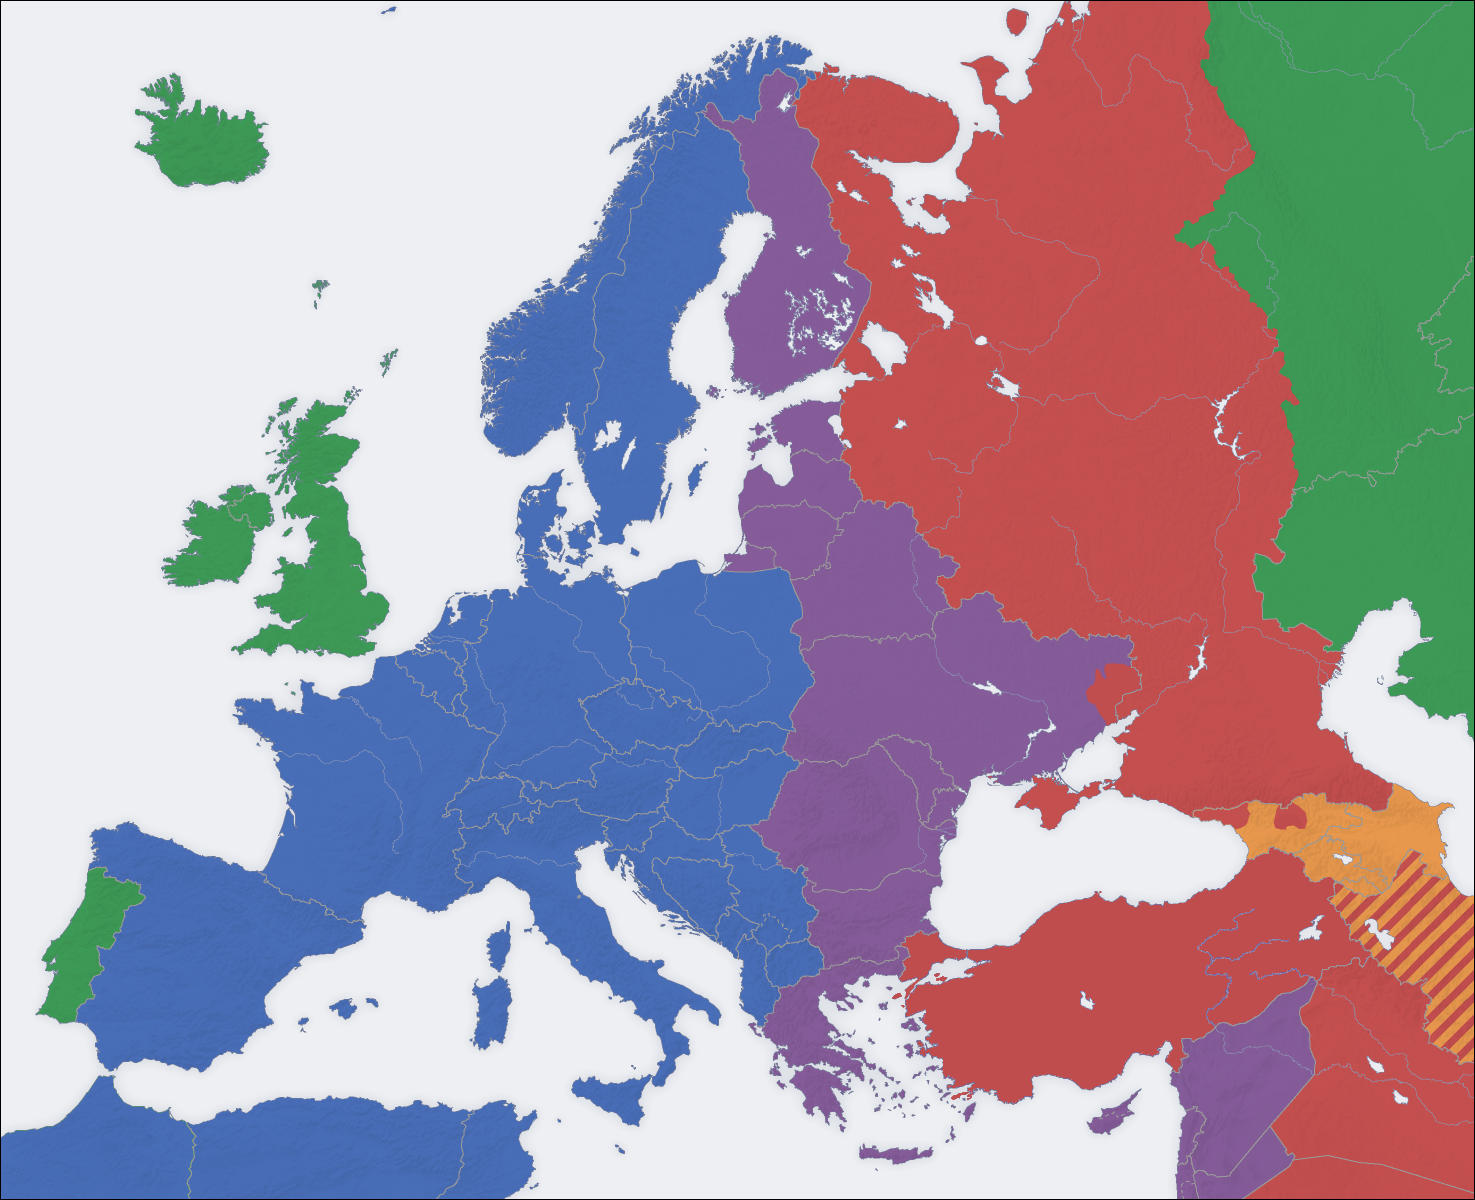 Datei:Europe time zones map.png – Wikipedia